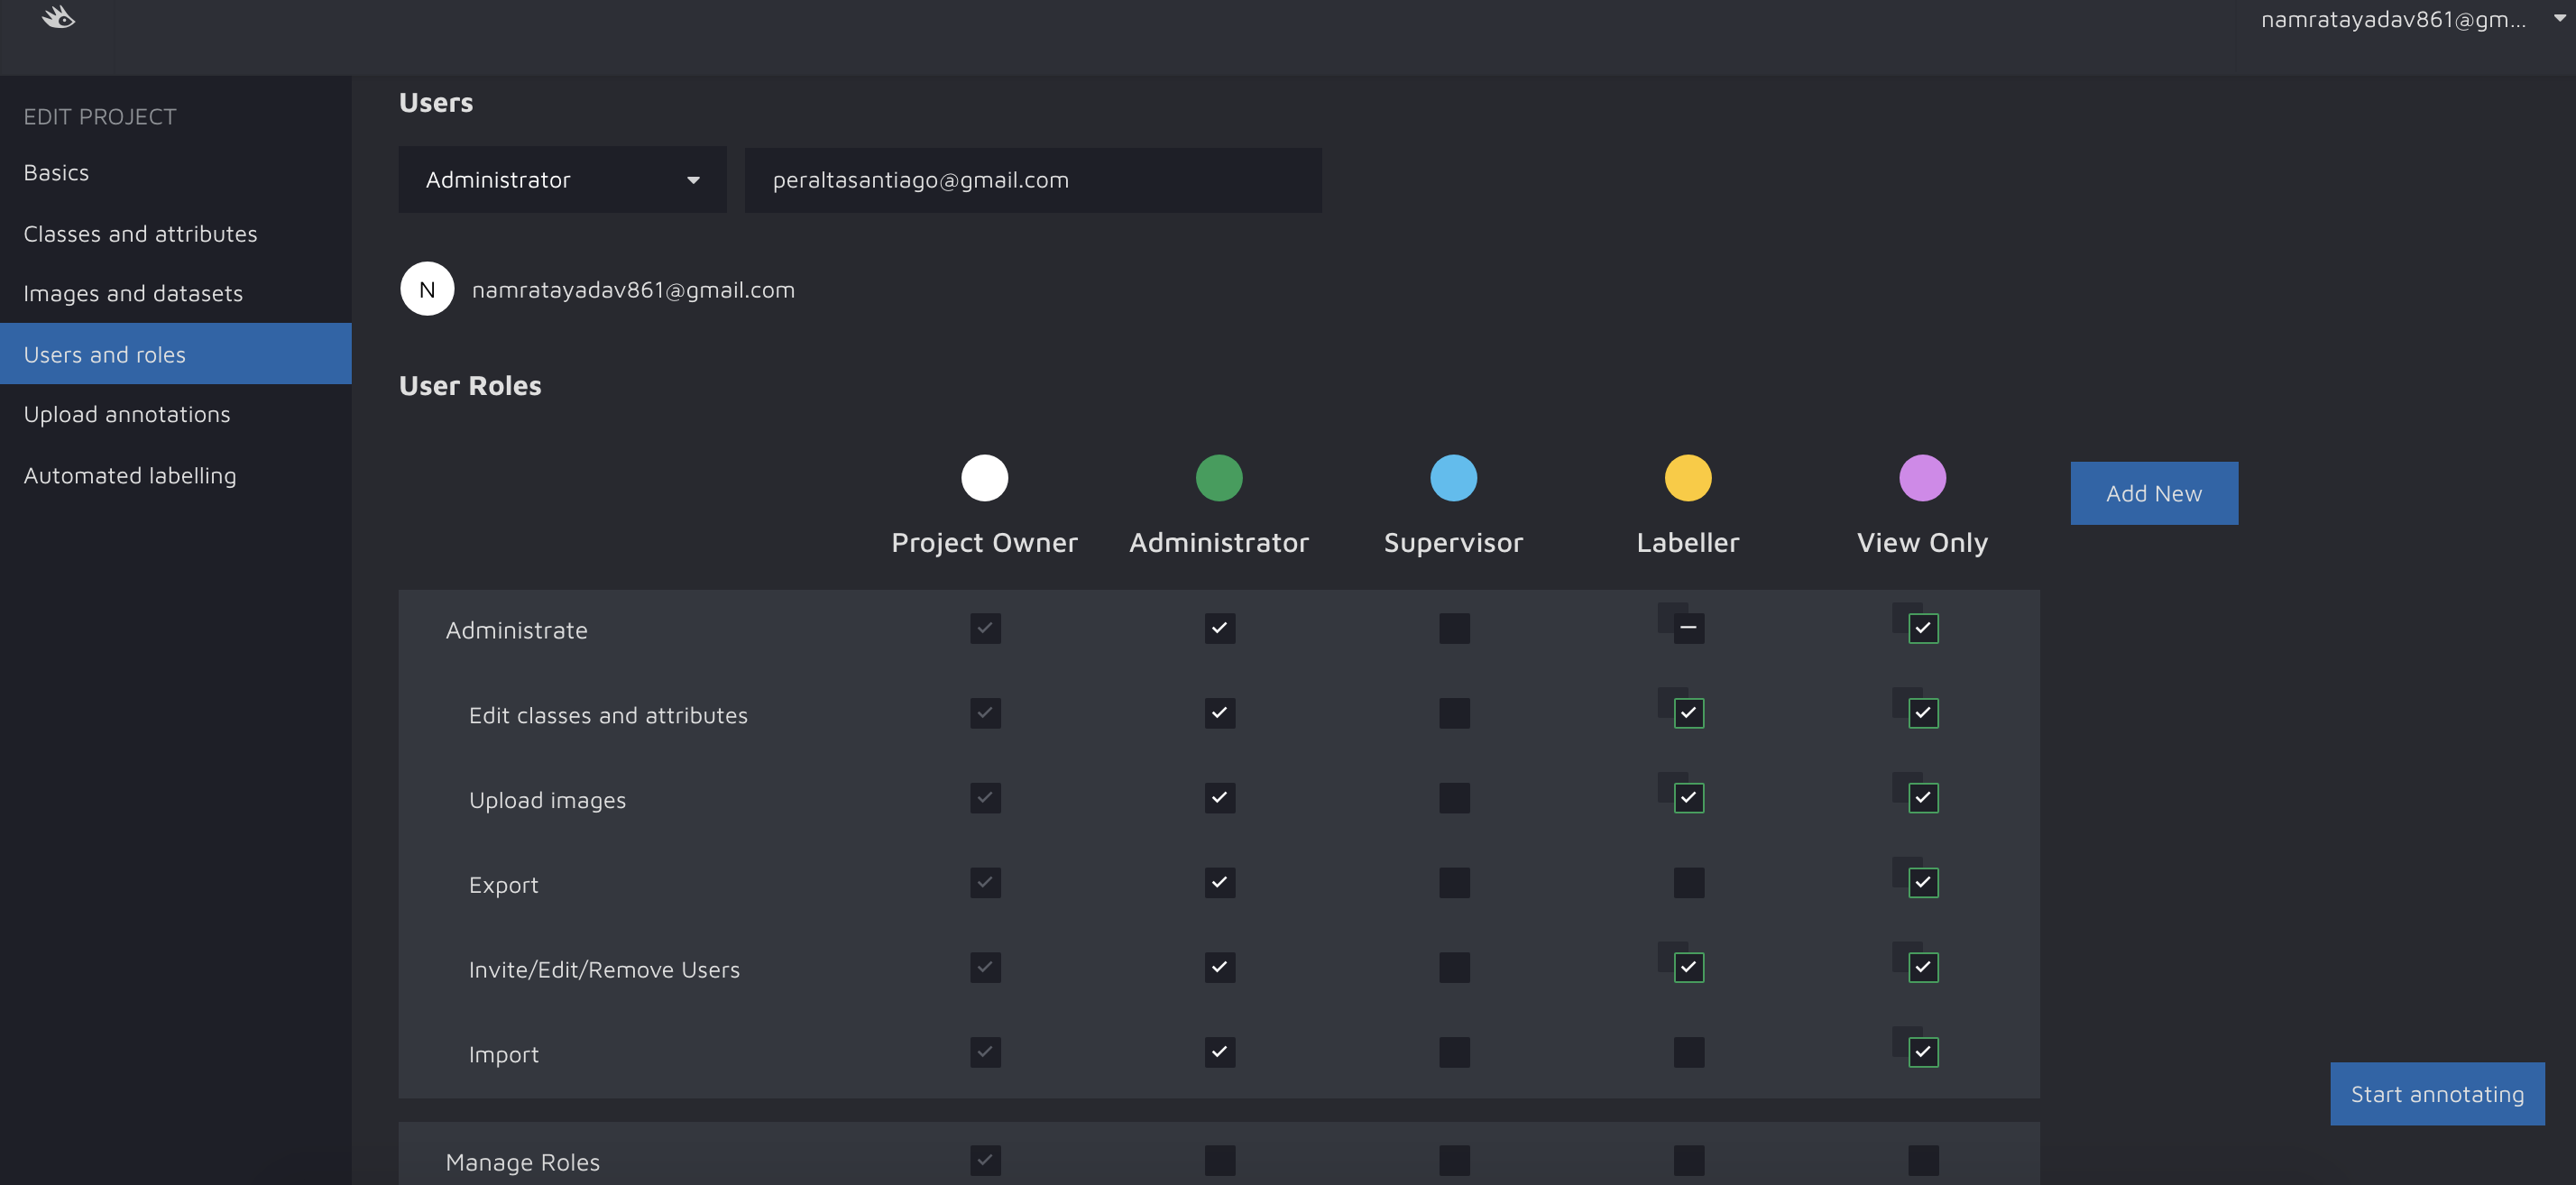 hasty.ai User and Roles Project management screenshot 1